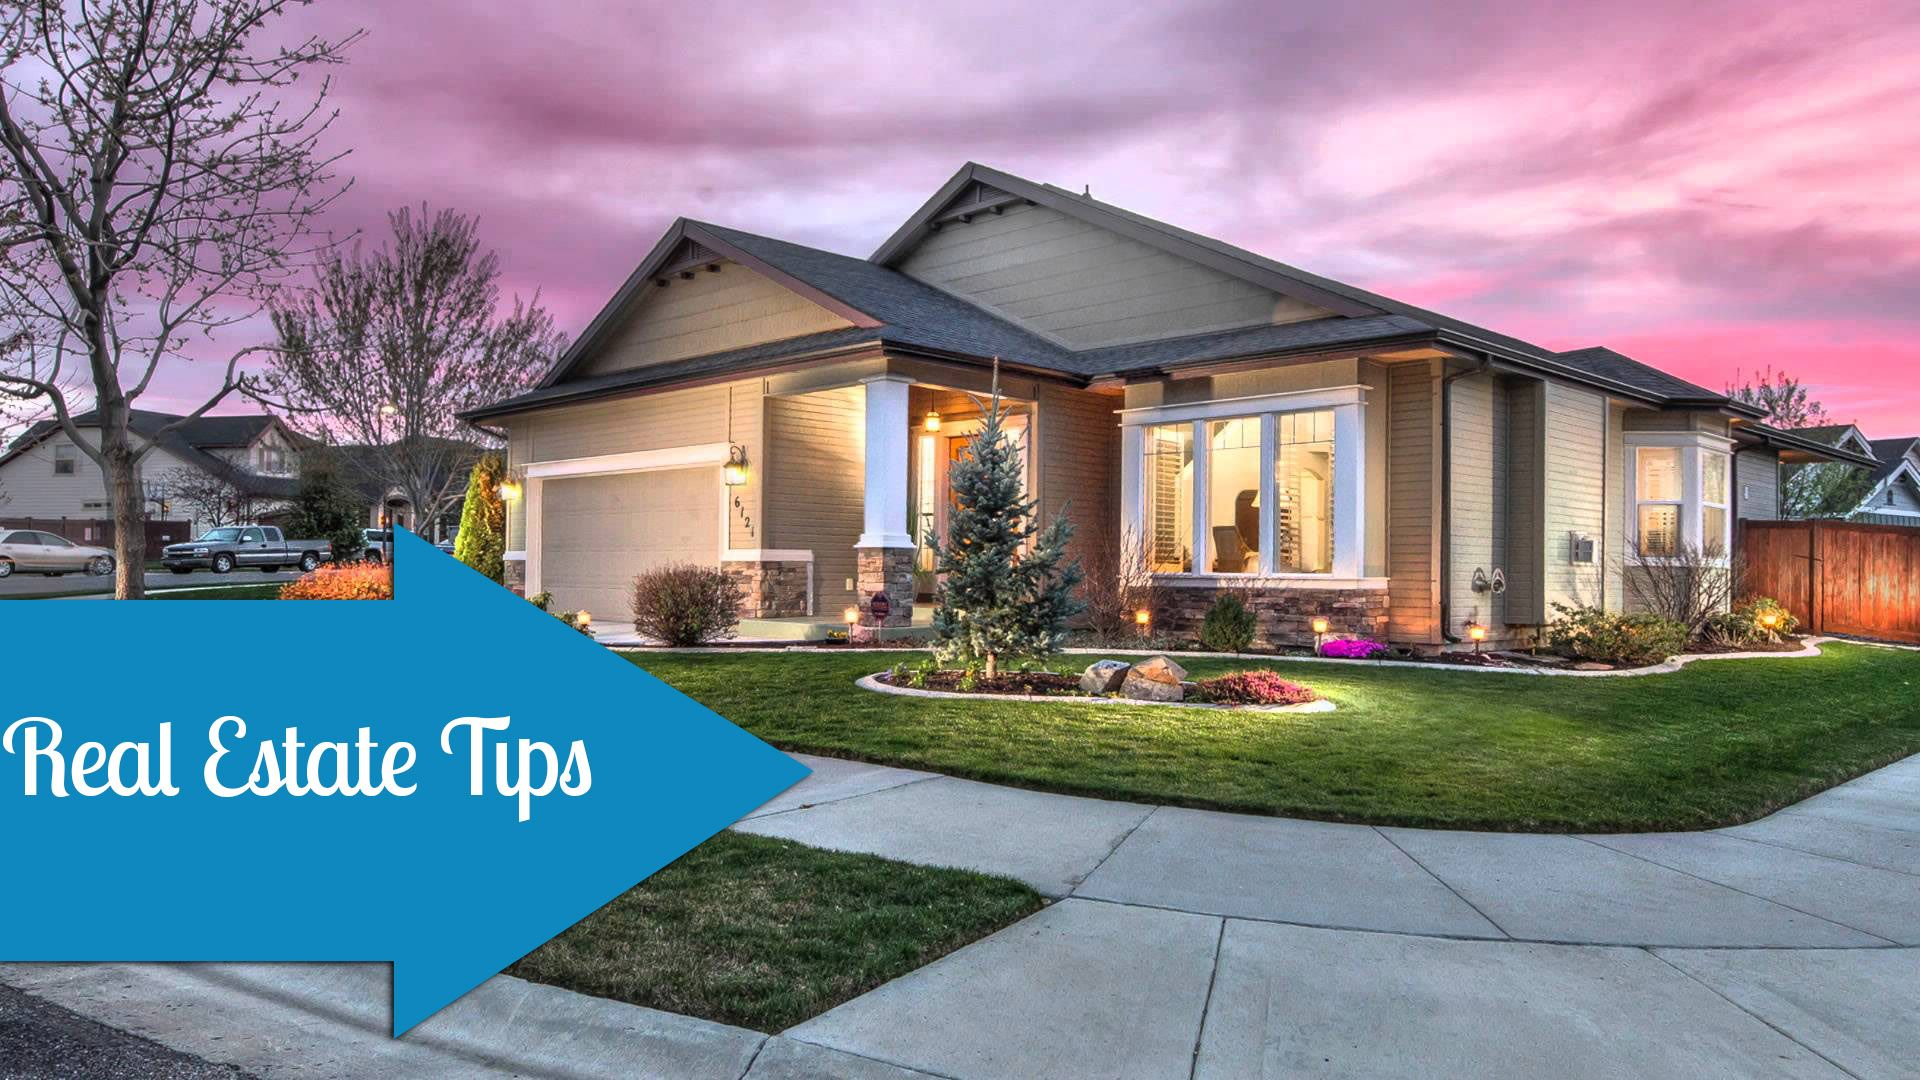 Real Estate Tips from Professionals Real estate, Home